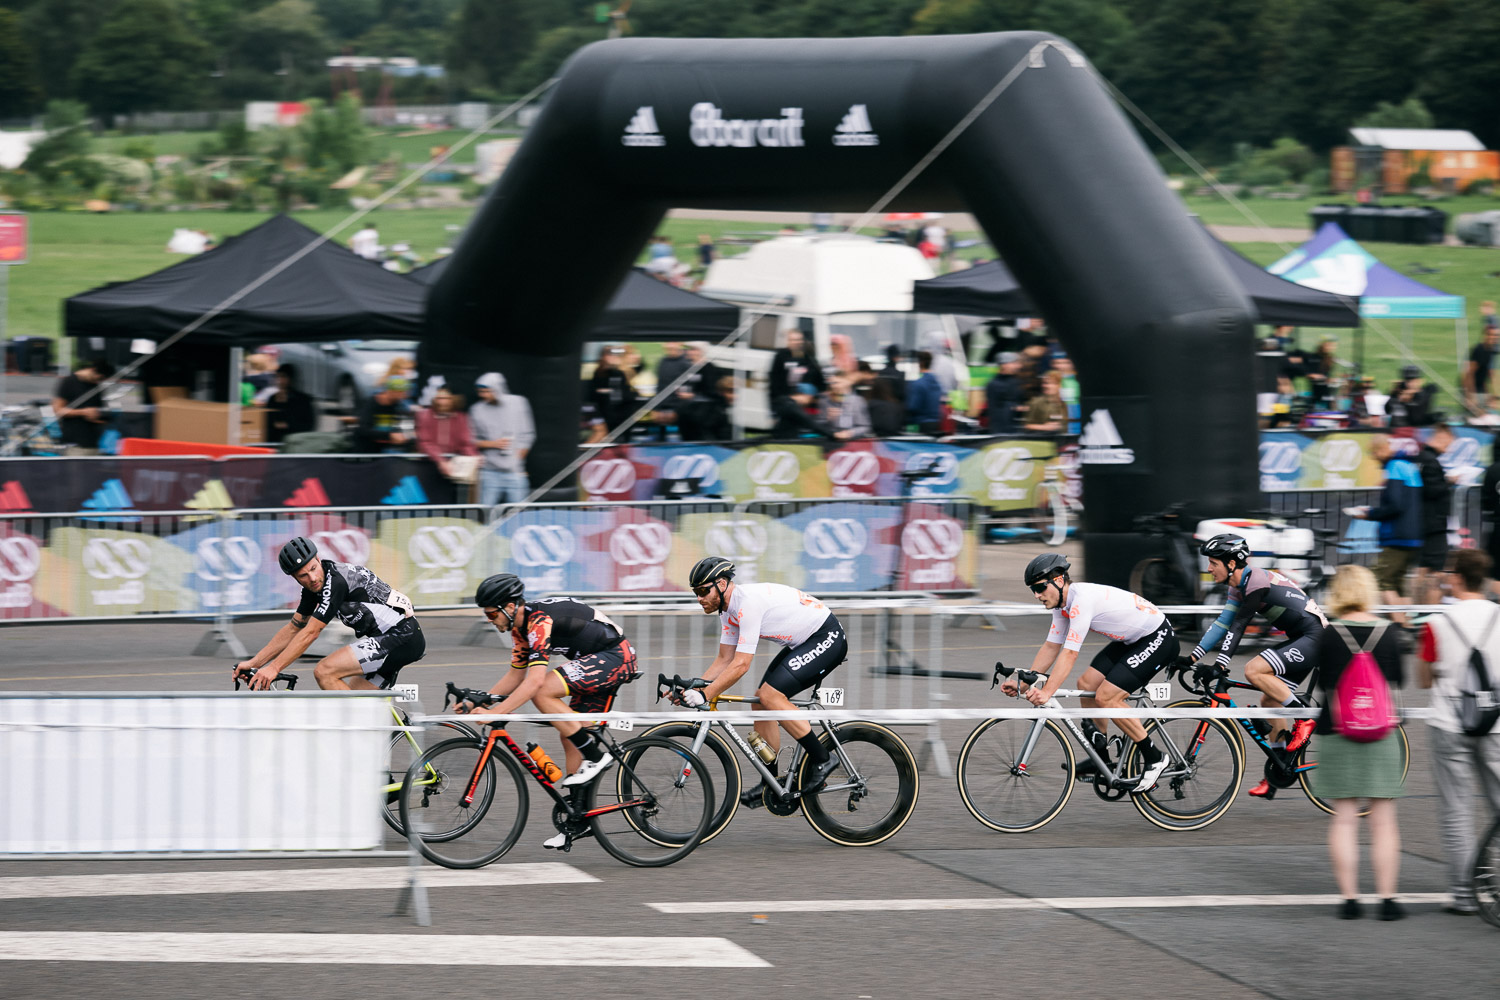 8bar-crit-fixed-gear-bike-race-stefanhaehnel-men-rr-13